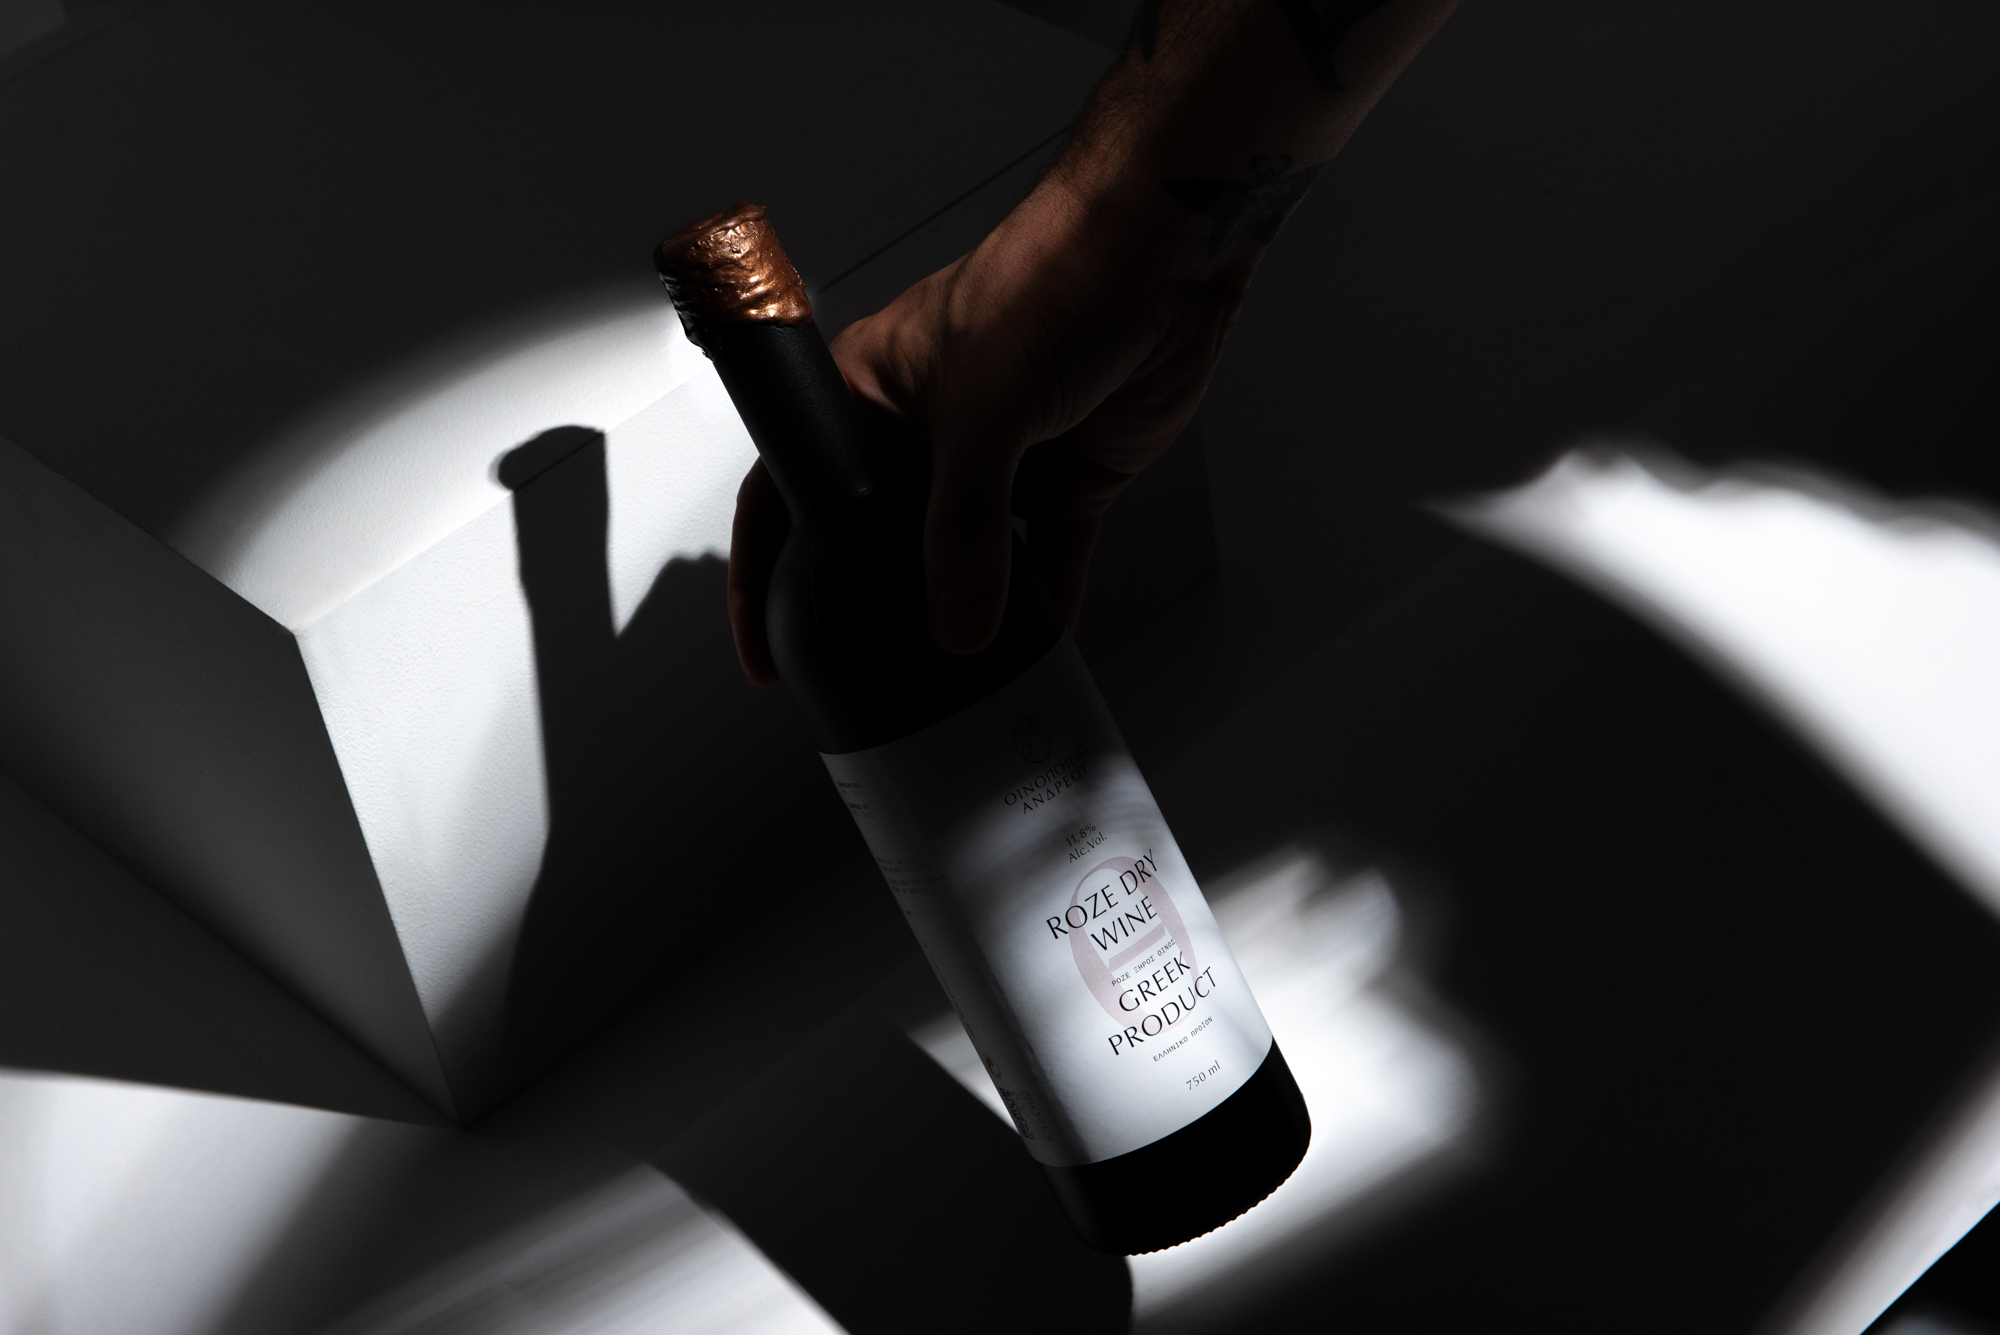 Wine Label Design for a Winery from the Birth Place of the Ancient Greek Hero Theseus / World Brand & Packaging Design Society